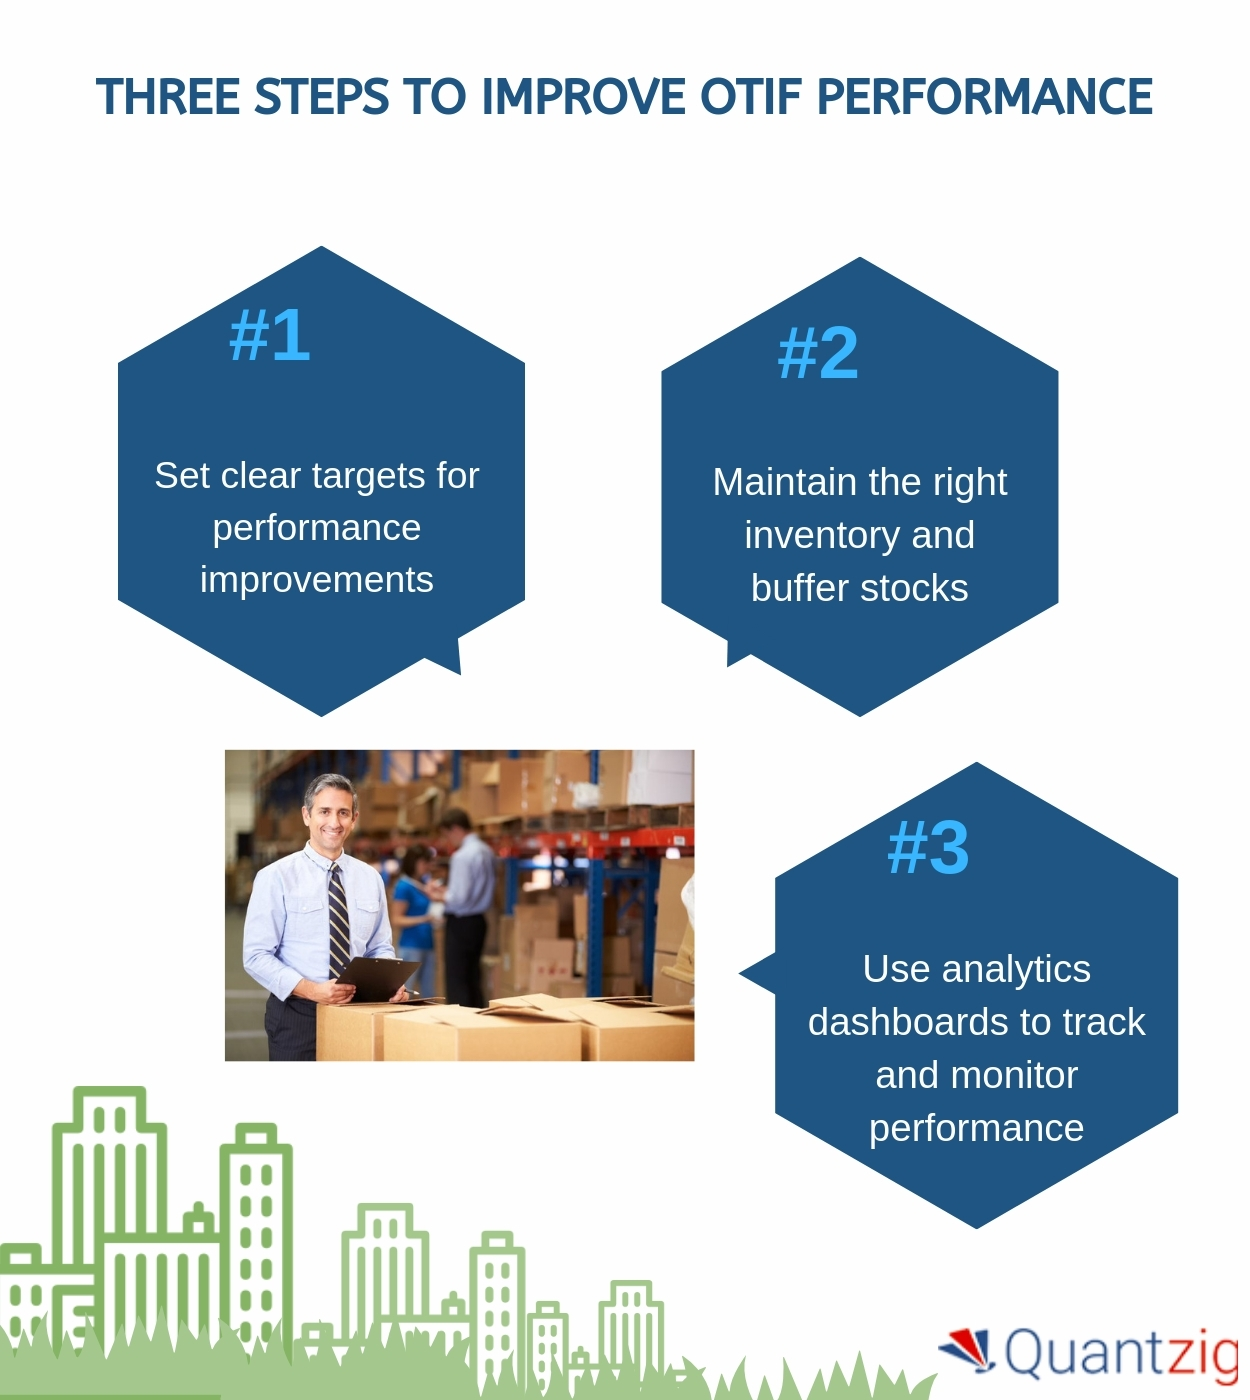 Why is OTIF a Key Metric for Measuring Supply Chain Performance